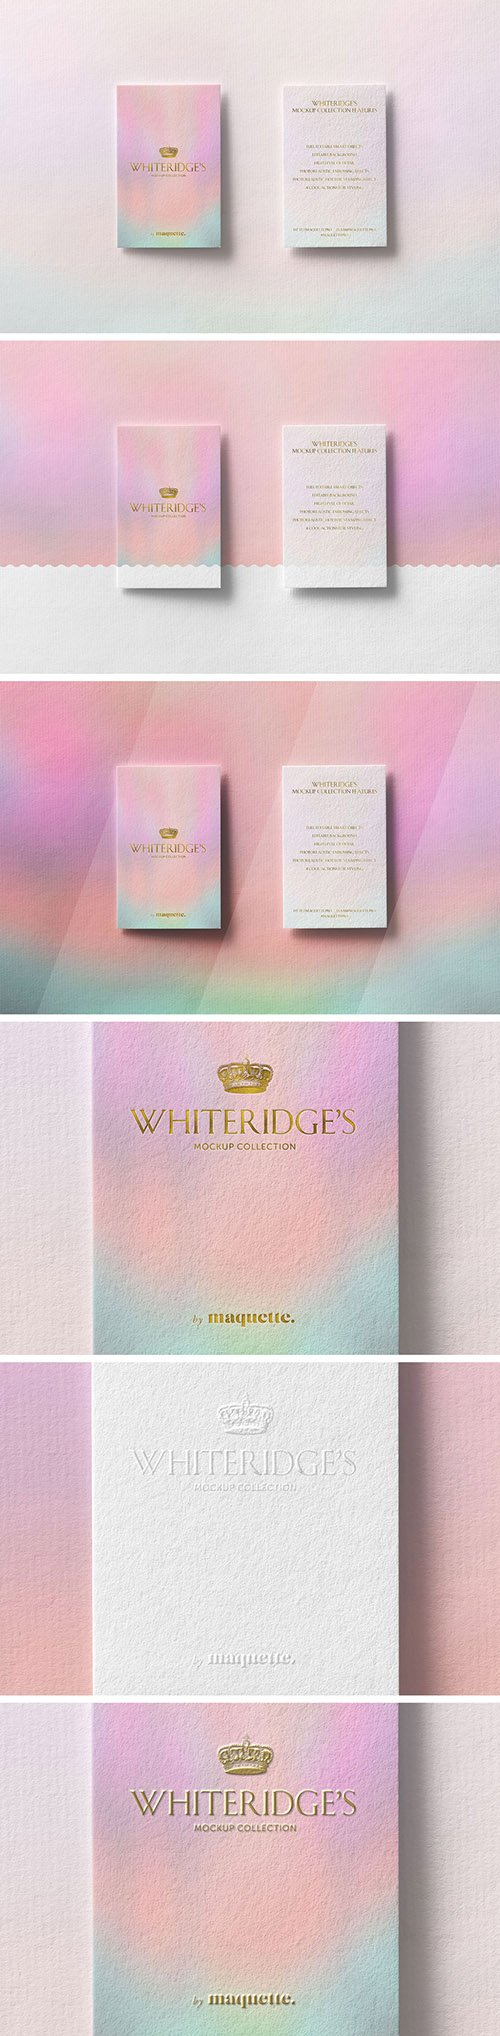 Two Luxury Business Cards with Gold Embossing Mockup 3 130420837 PSDT